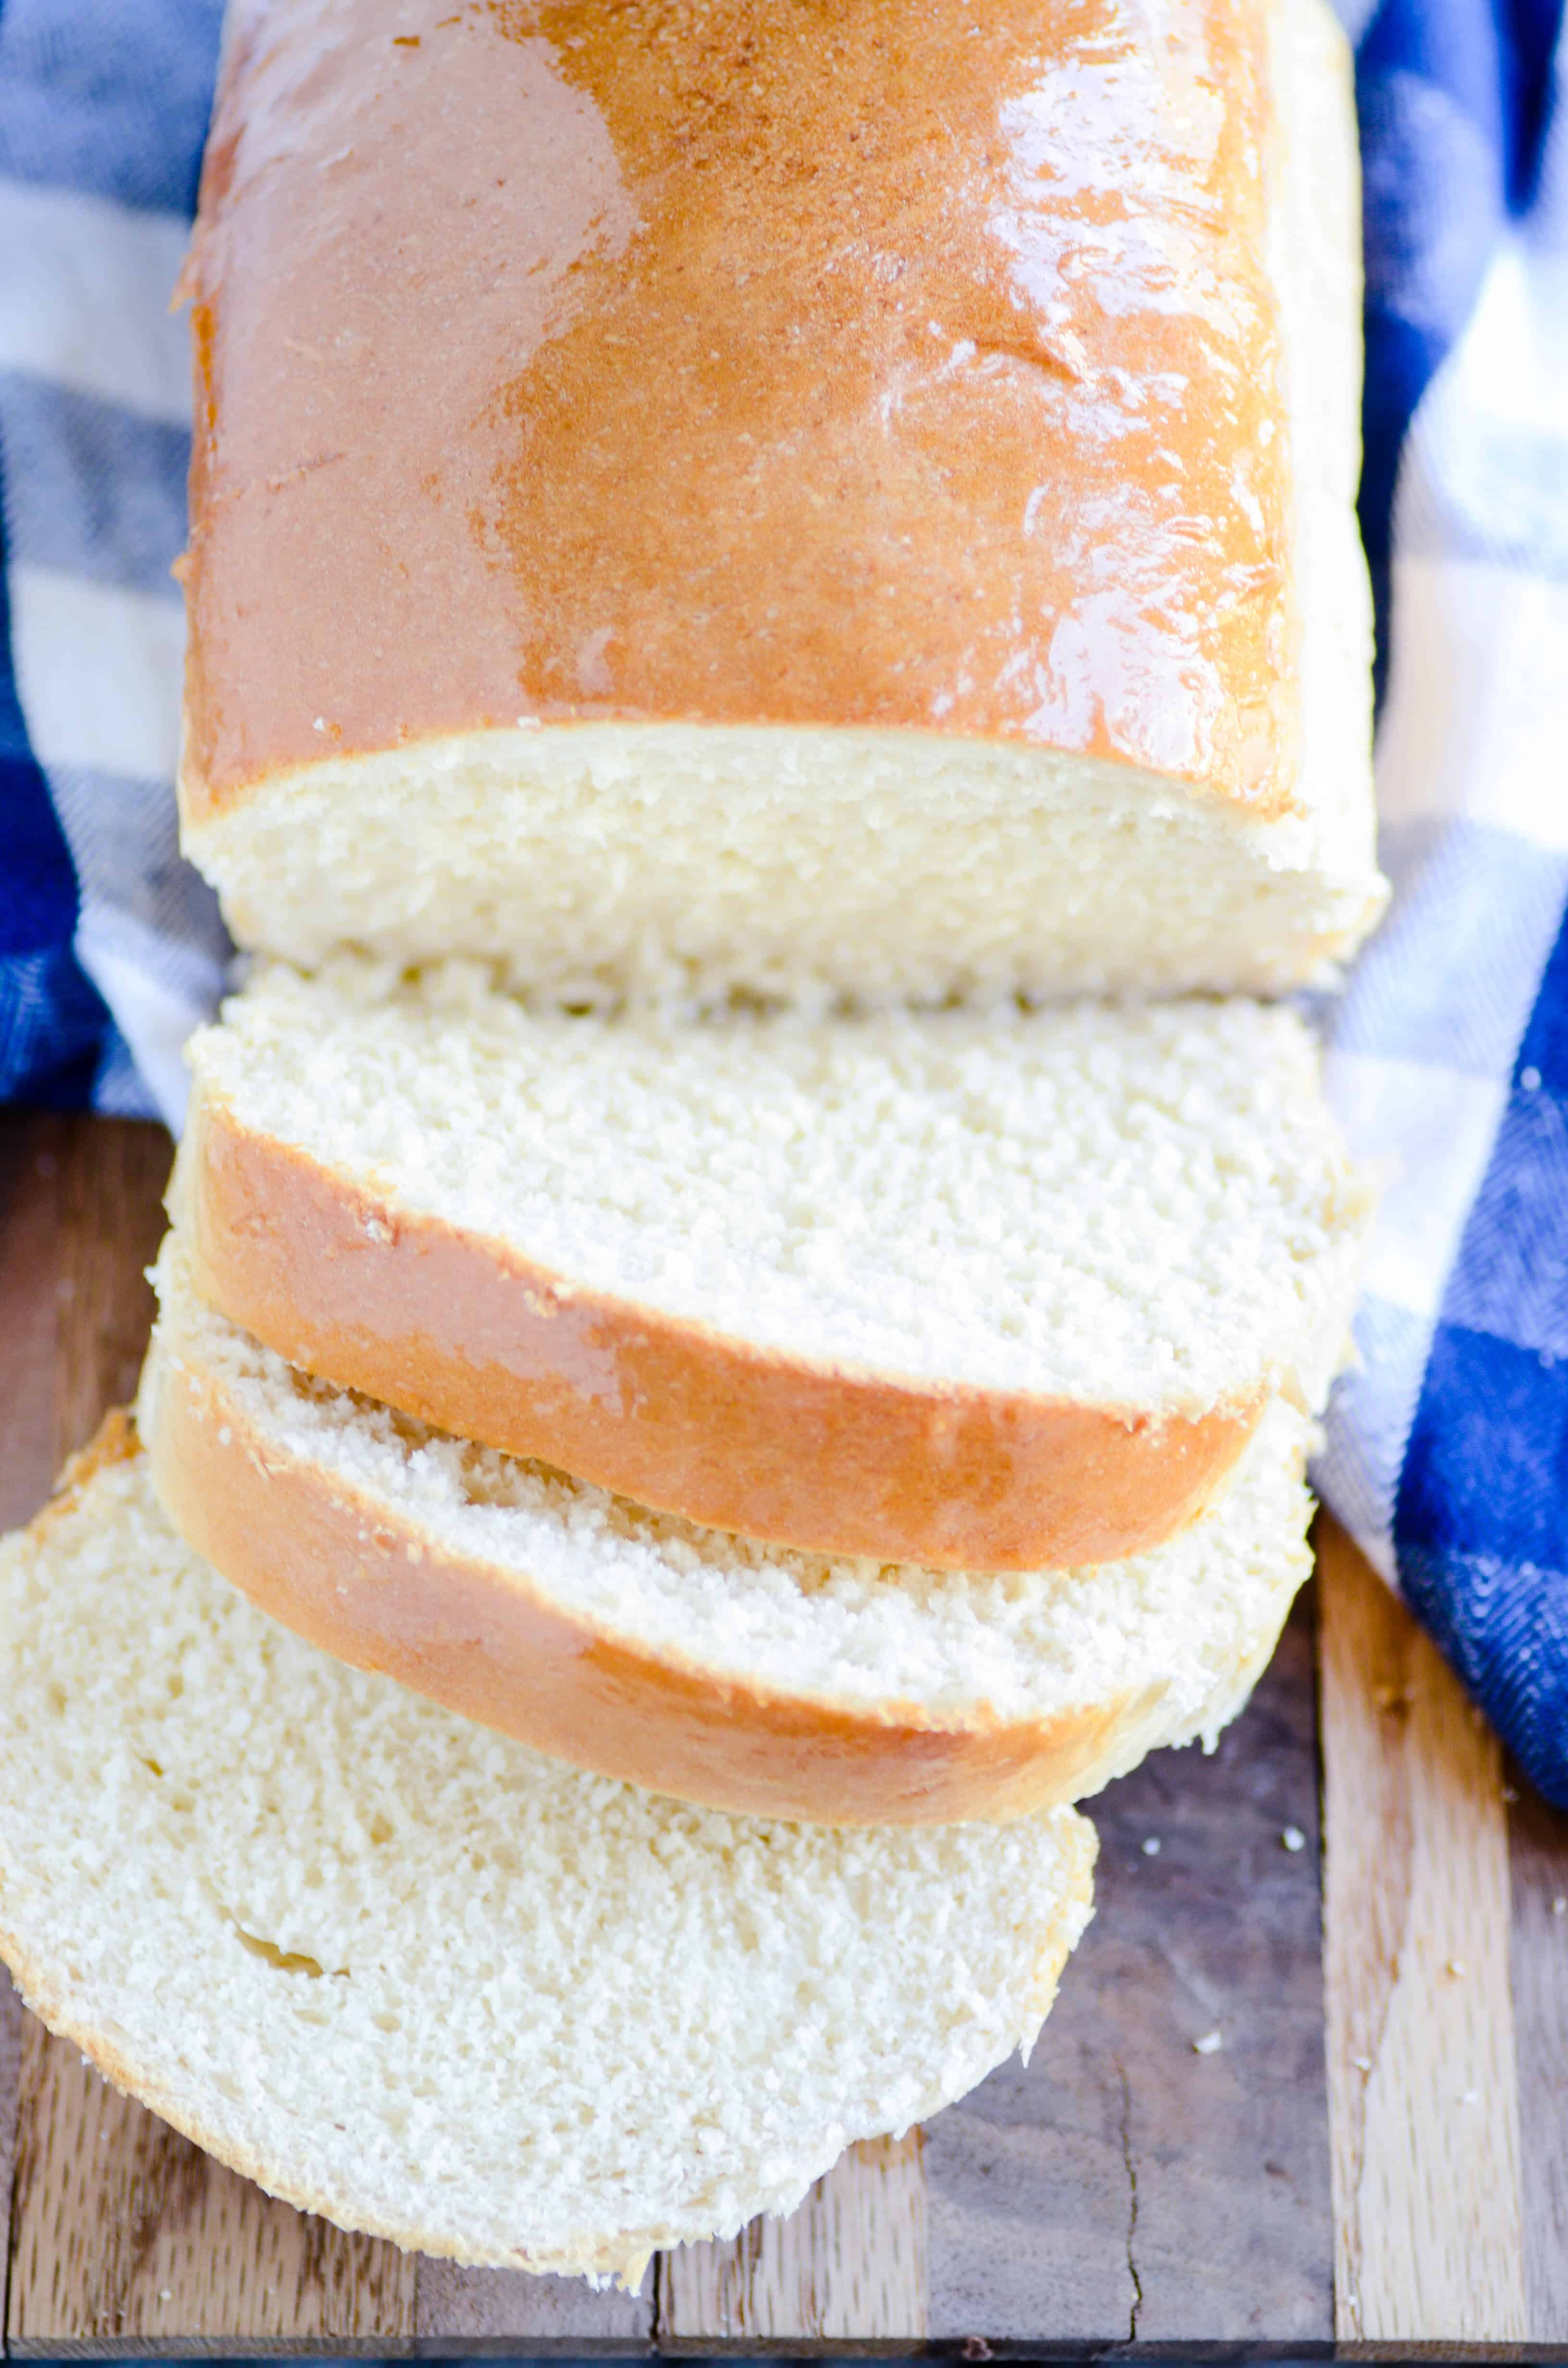 This simple recipe for homemade bread is a family favorite. Use it for sandwiches, french toast, or straight out of the oven smothered in butter!